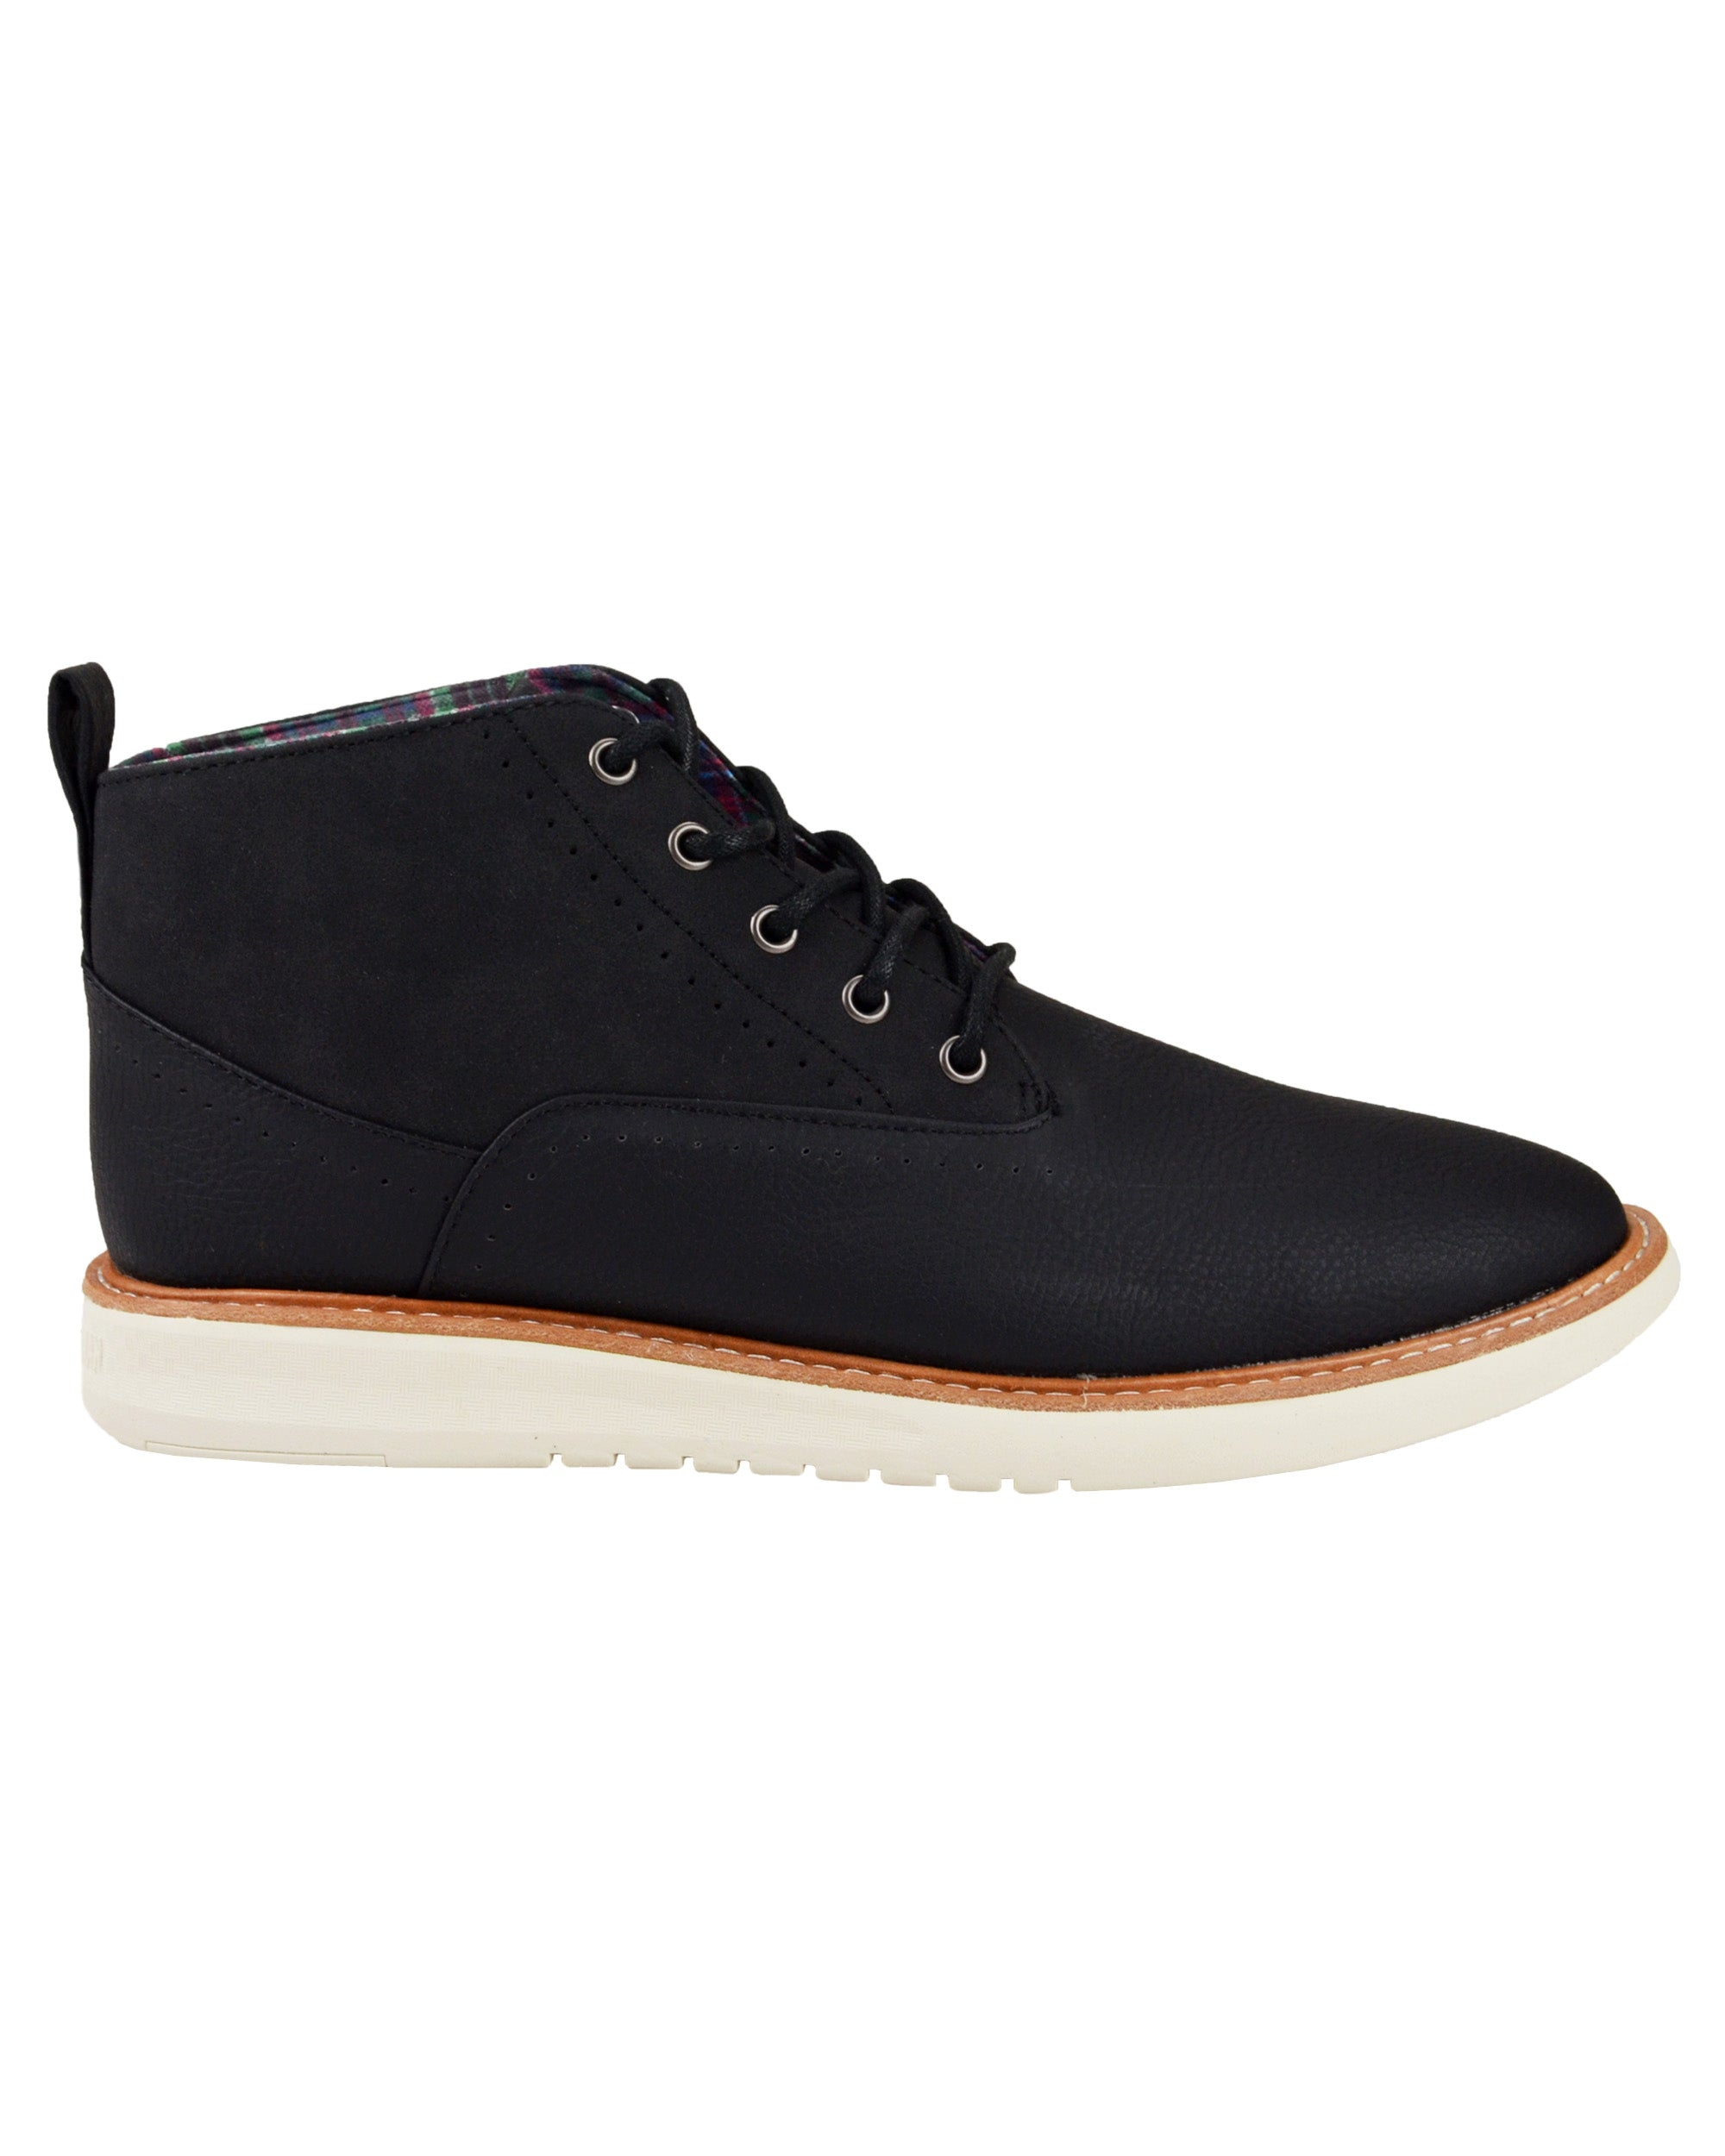 Omega Casual Chukka Boot - Black